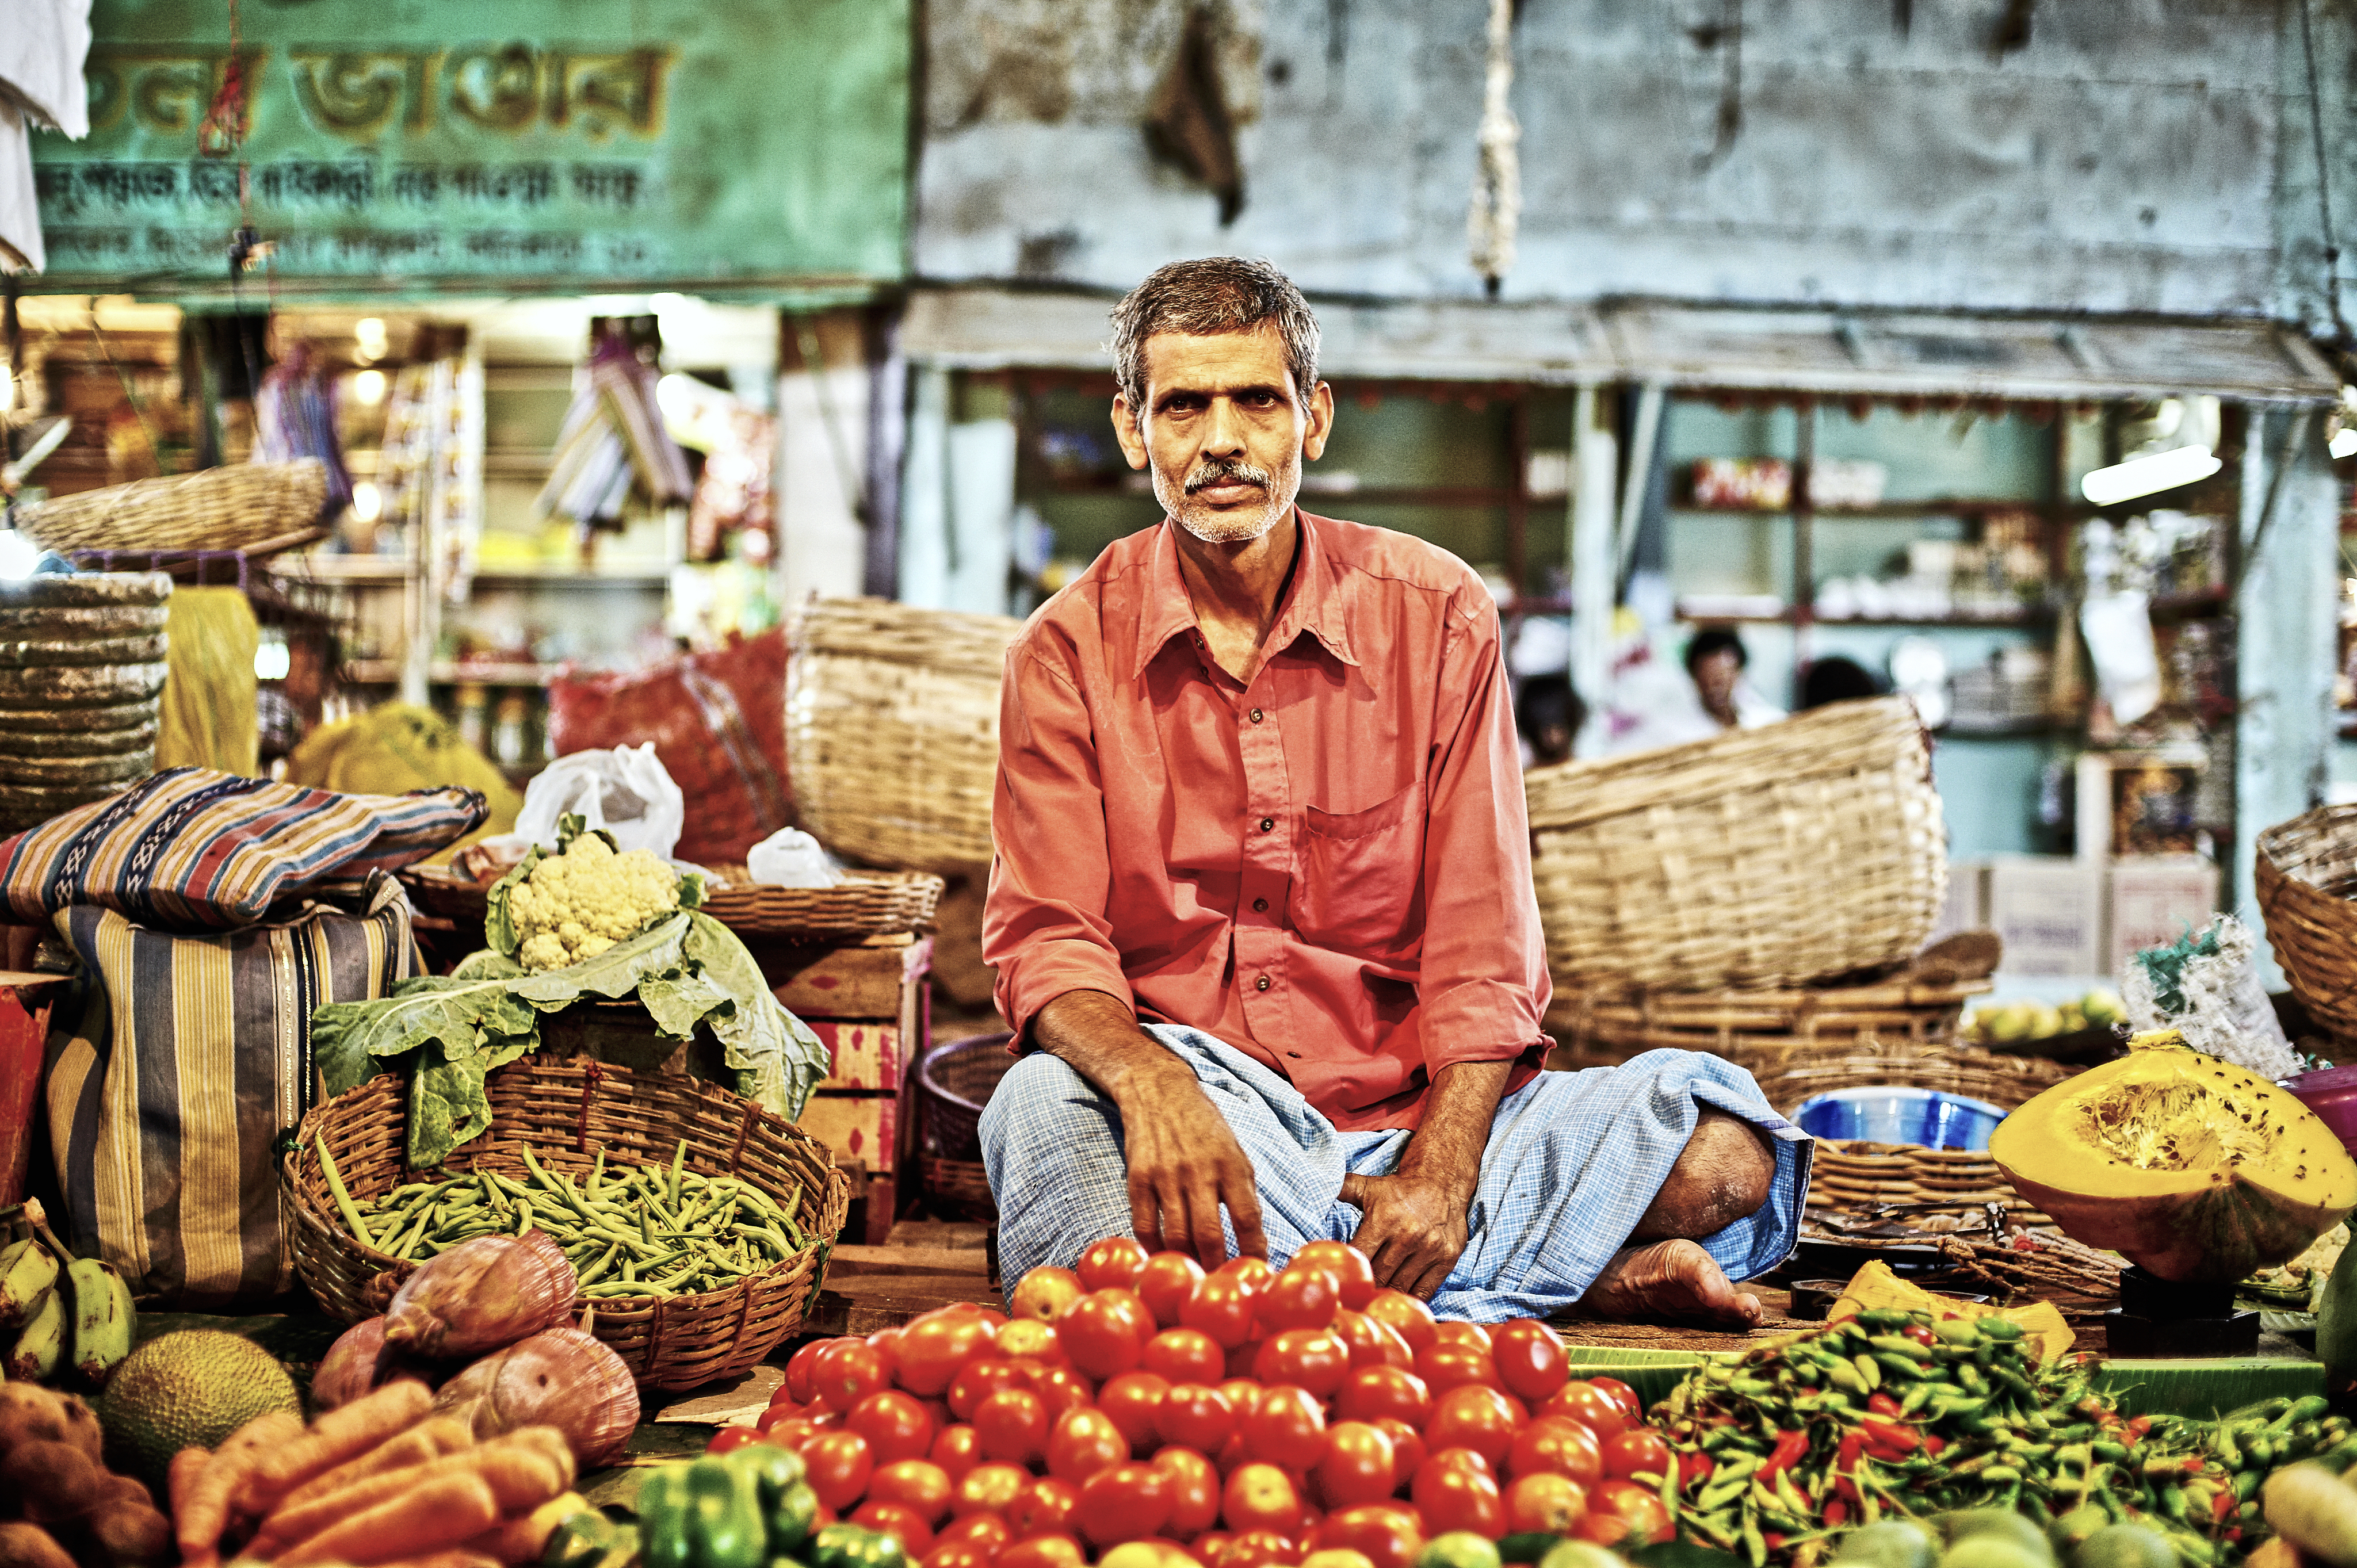 workers of India / Market Day